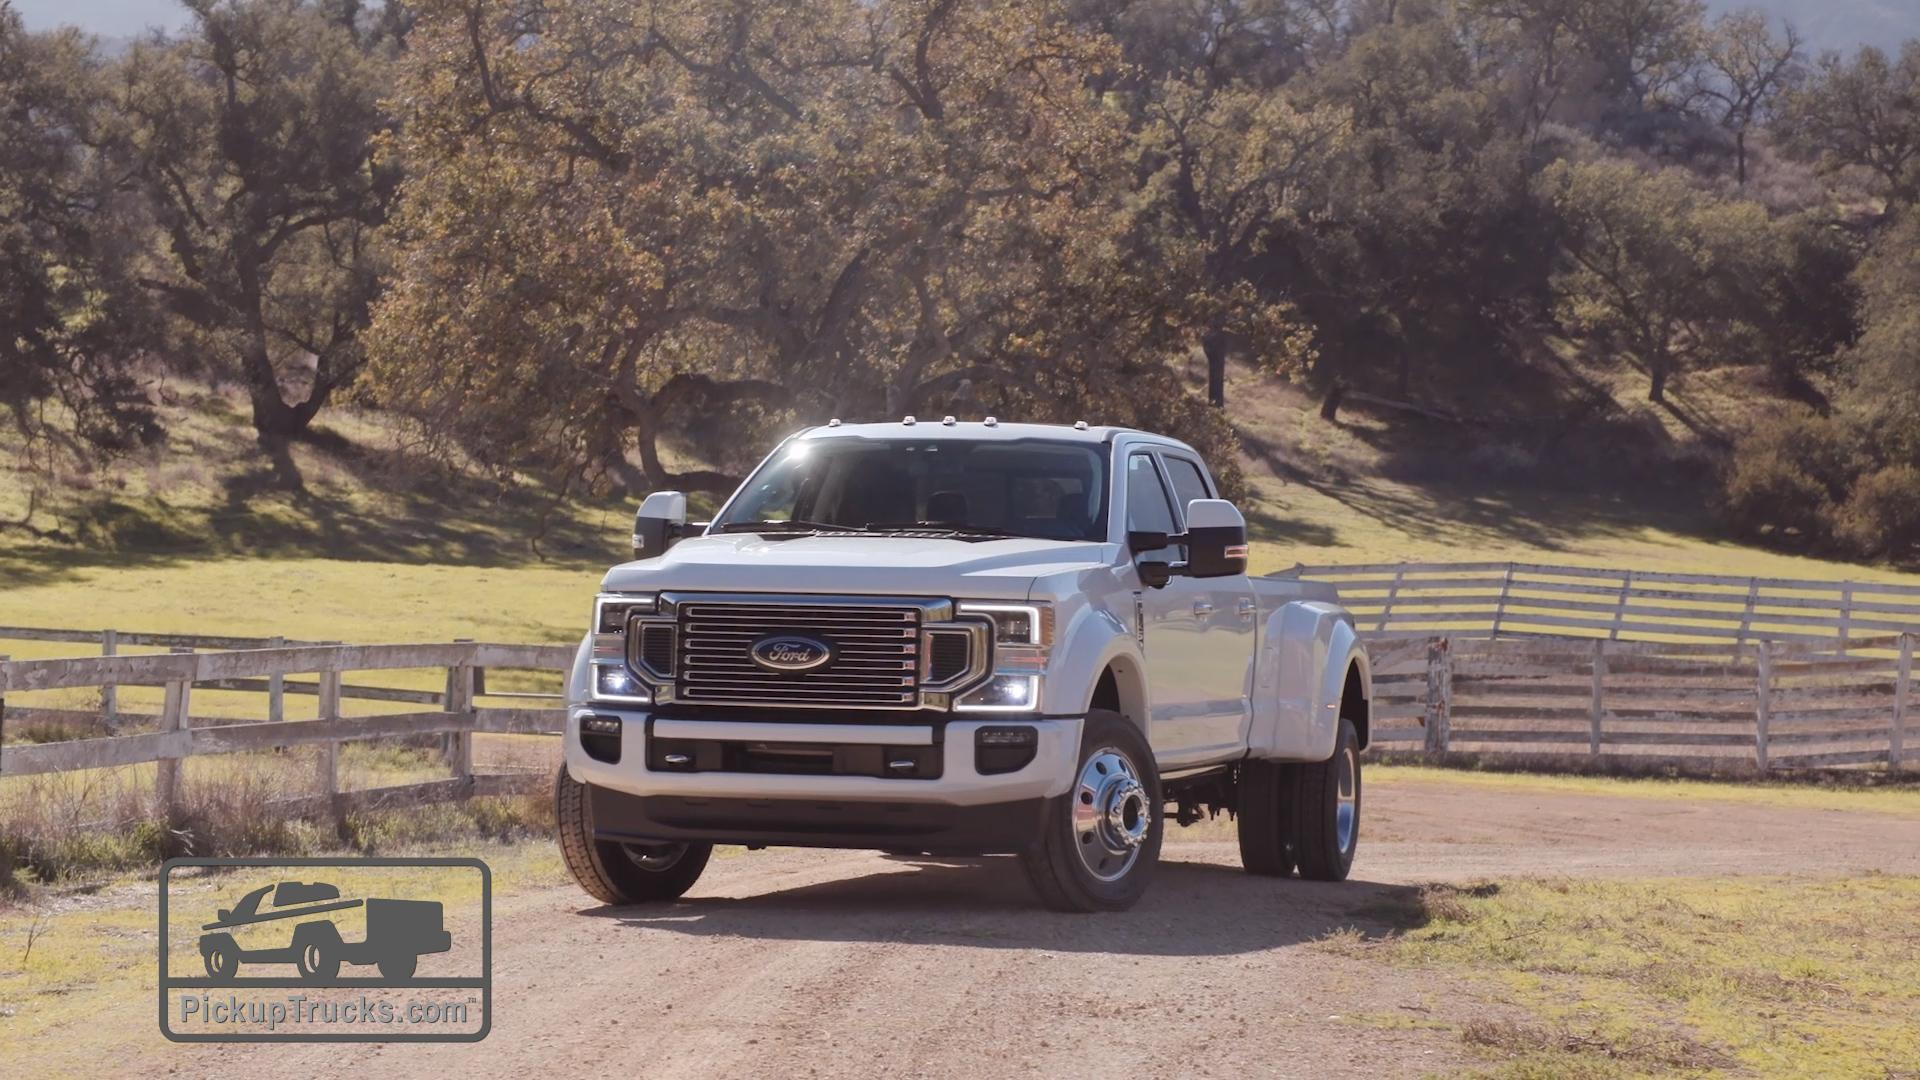 hight resolution of 2020 ford f 250 f 350 and f 450 video inside outside and under the hood pickuptrucks com news